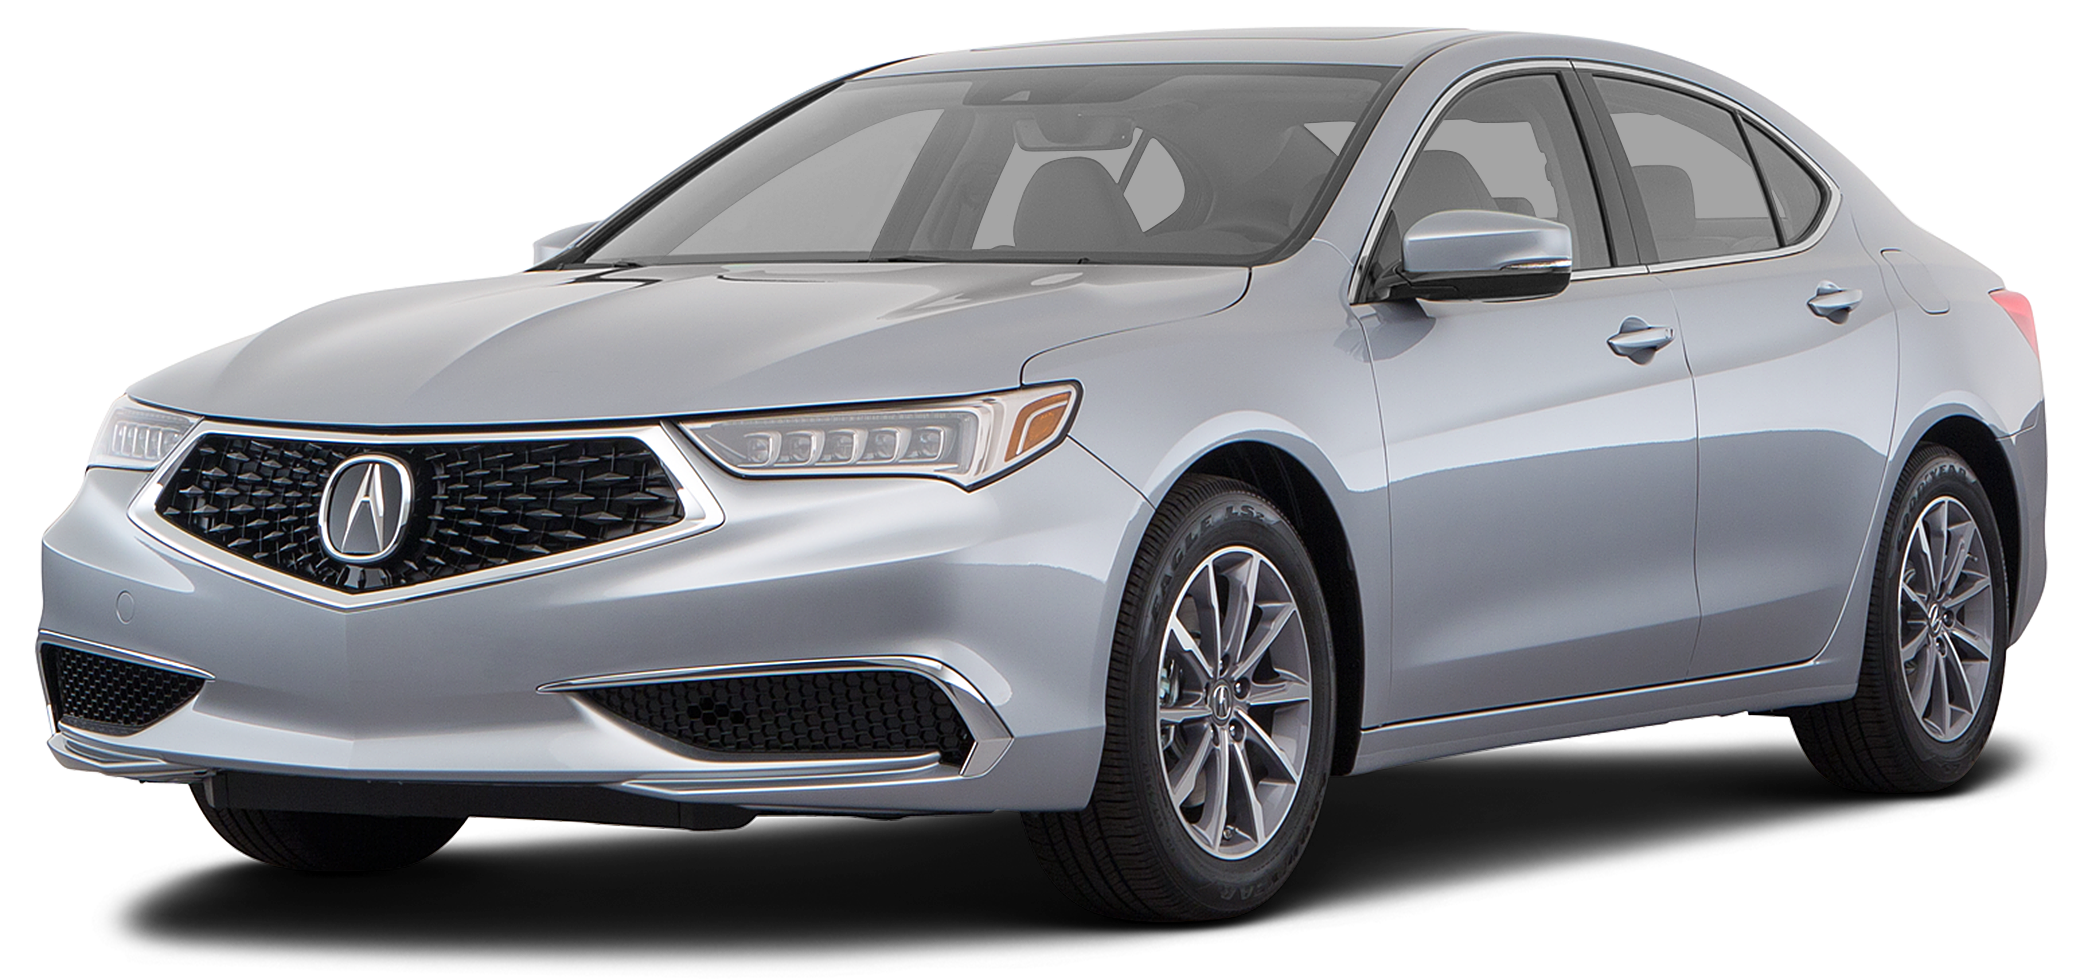 69 Best Review Acura Tlx 2020 Lease Pictures by Acura Tlx 2020 Lease